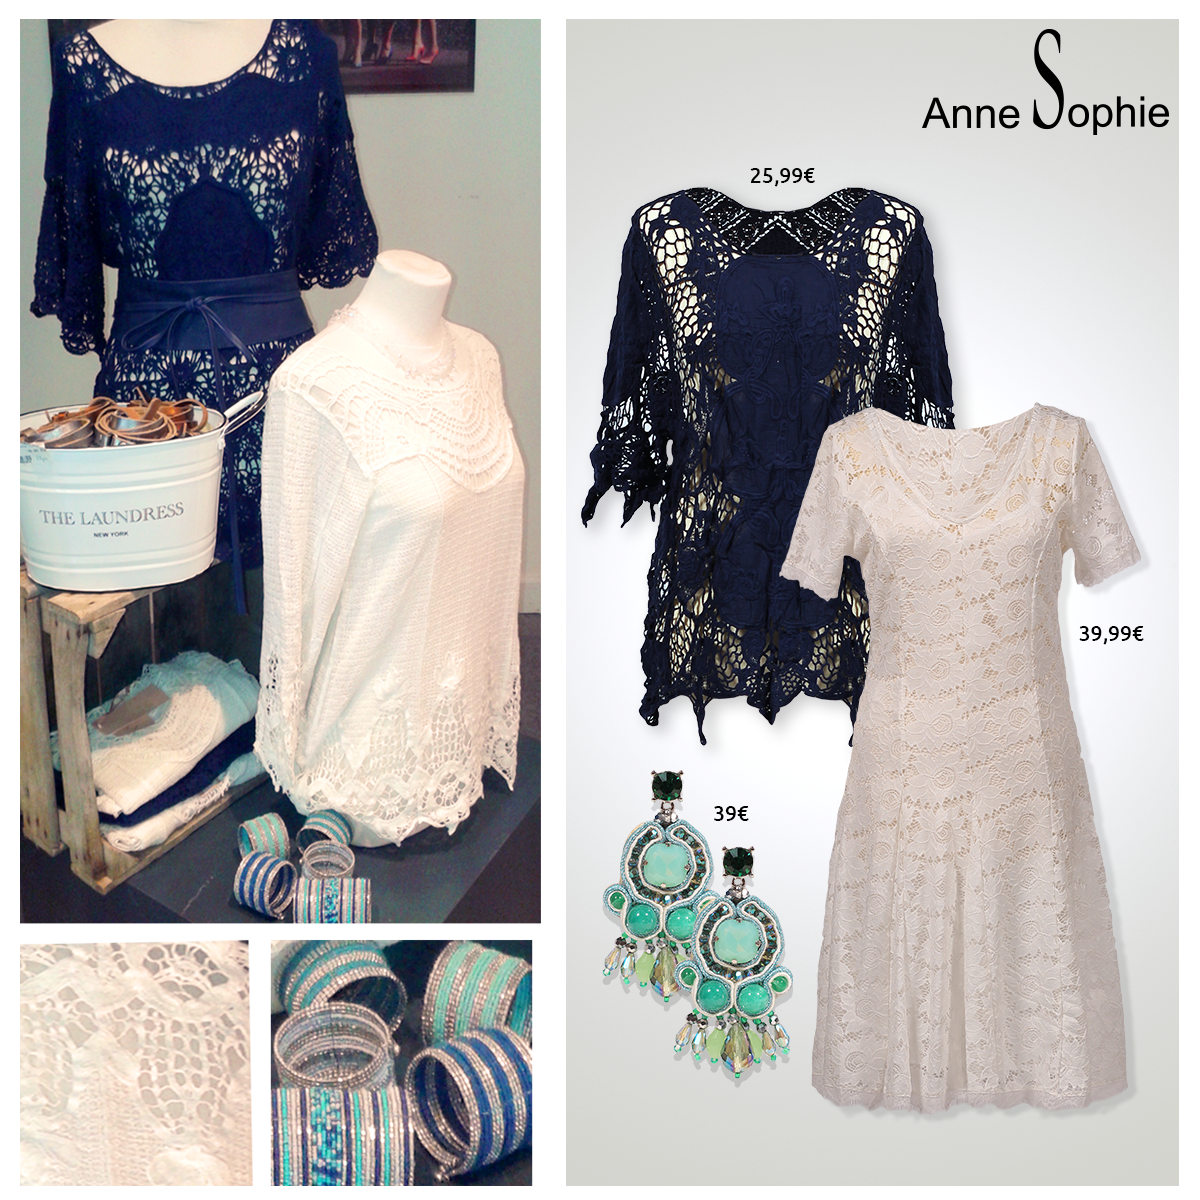 """Casual = Anne Sophie offers a feminine ready-to-wear """"Casual Chic"""" collection for a year-round feminine look."""